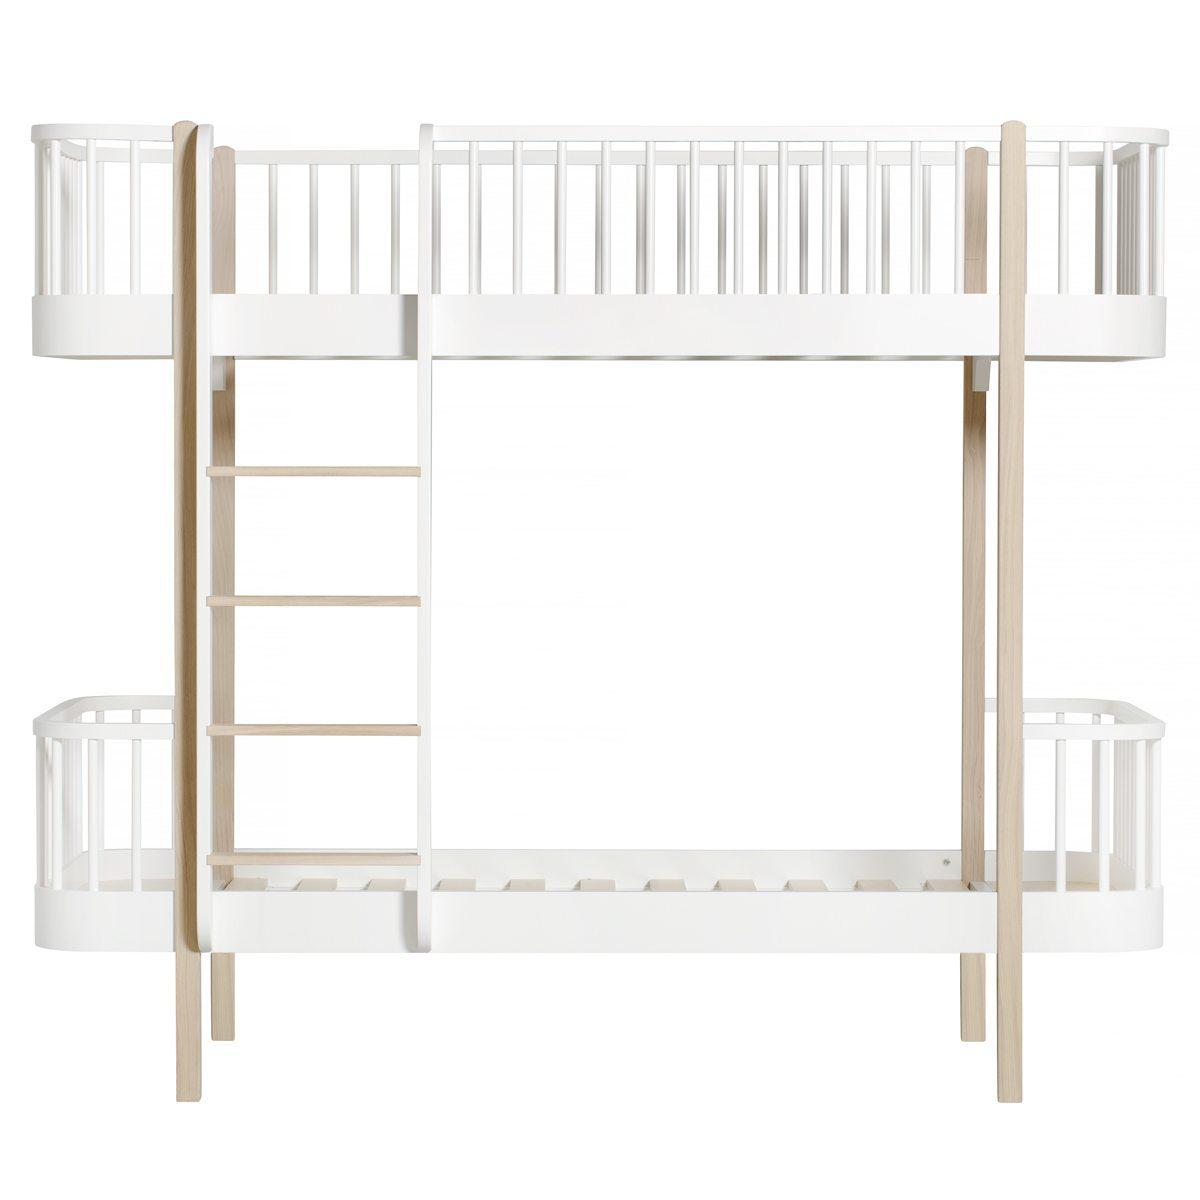 Oliver Furniture Stapelbed Wood white oak ladder links voor